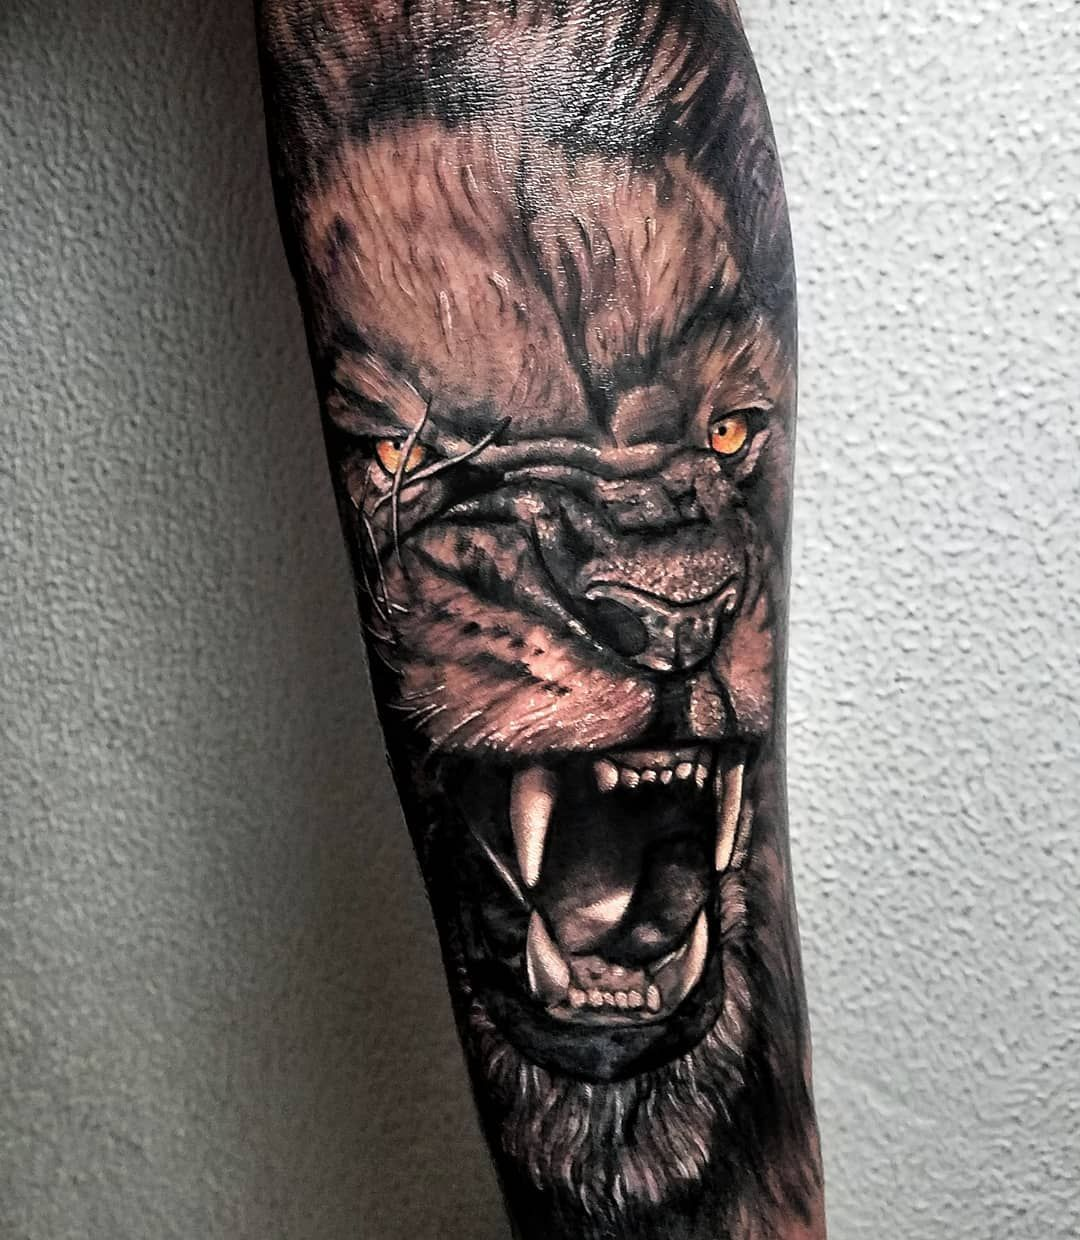 Trabajo del día citas  cobertura (primera  sesión) disponible en: venezula  #lion #tattooleon #tattoomedusa #tattoorostro #tattoo #india #art #ink #tattooart #tattooink  #artink #tattoovenezula #tattooblack #tattoo #tatuaje #España #venezuelatattoo #Colombia #india #indiatattoo #blackfriday #balckandwhite